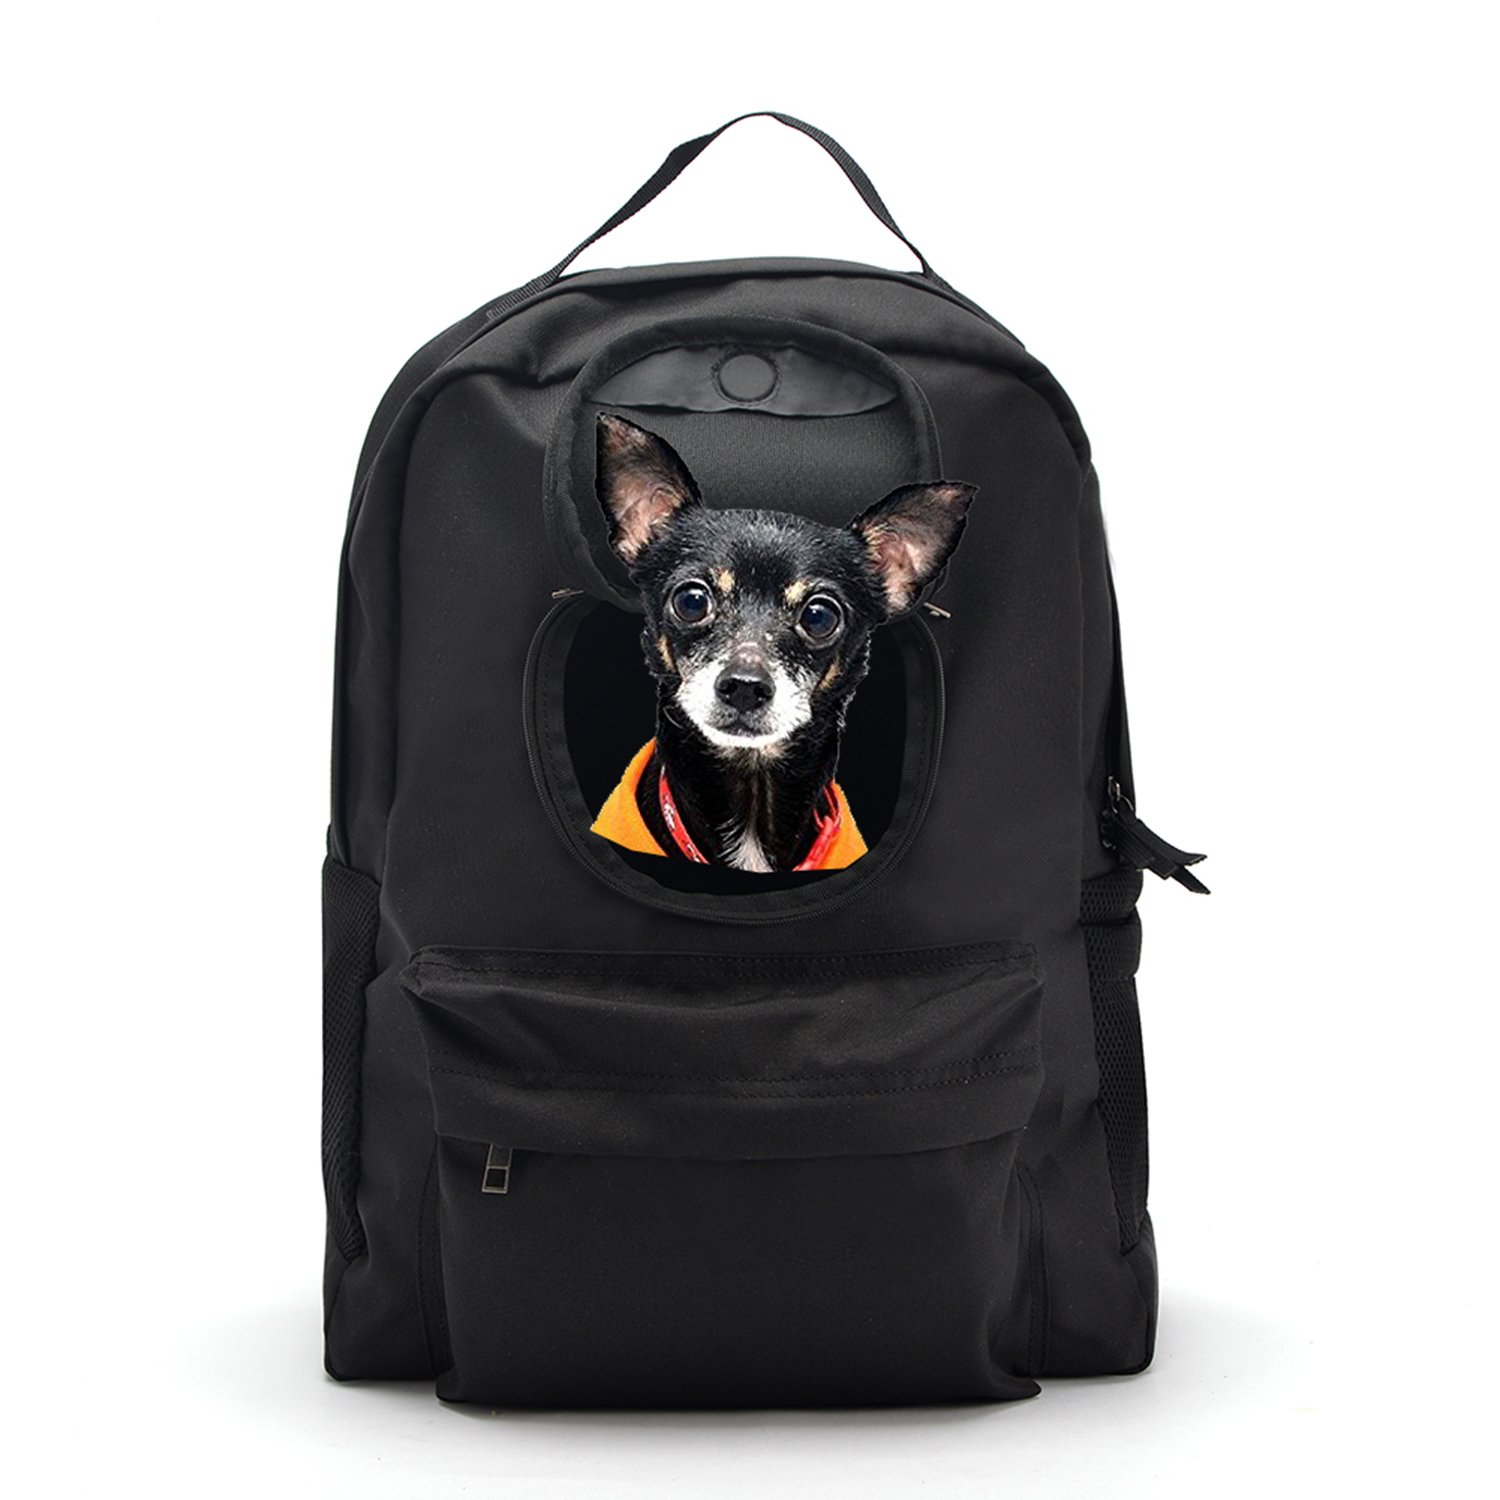 Cat Carrier Backpack, Pet Carrier Backpack for Small Dogs, Classic Concealed for Outdoor Travel - Black (Black)